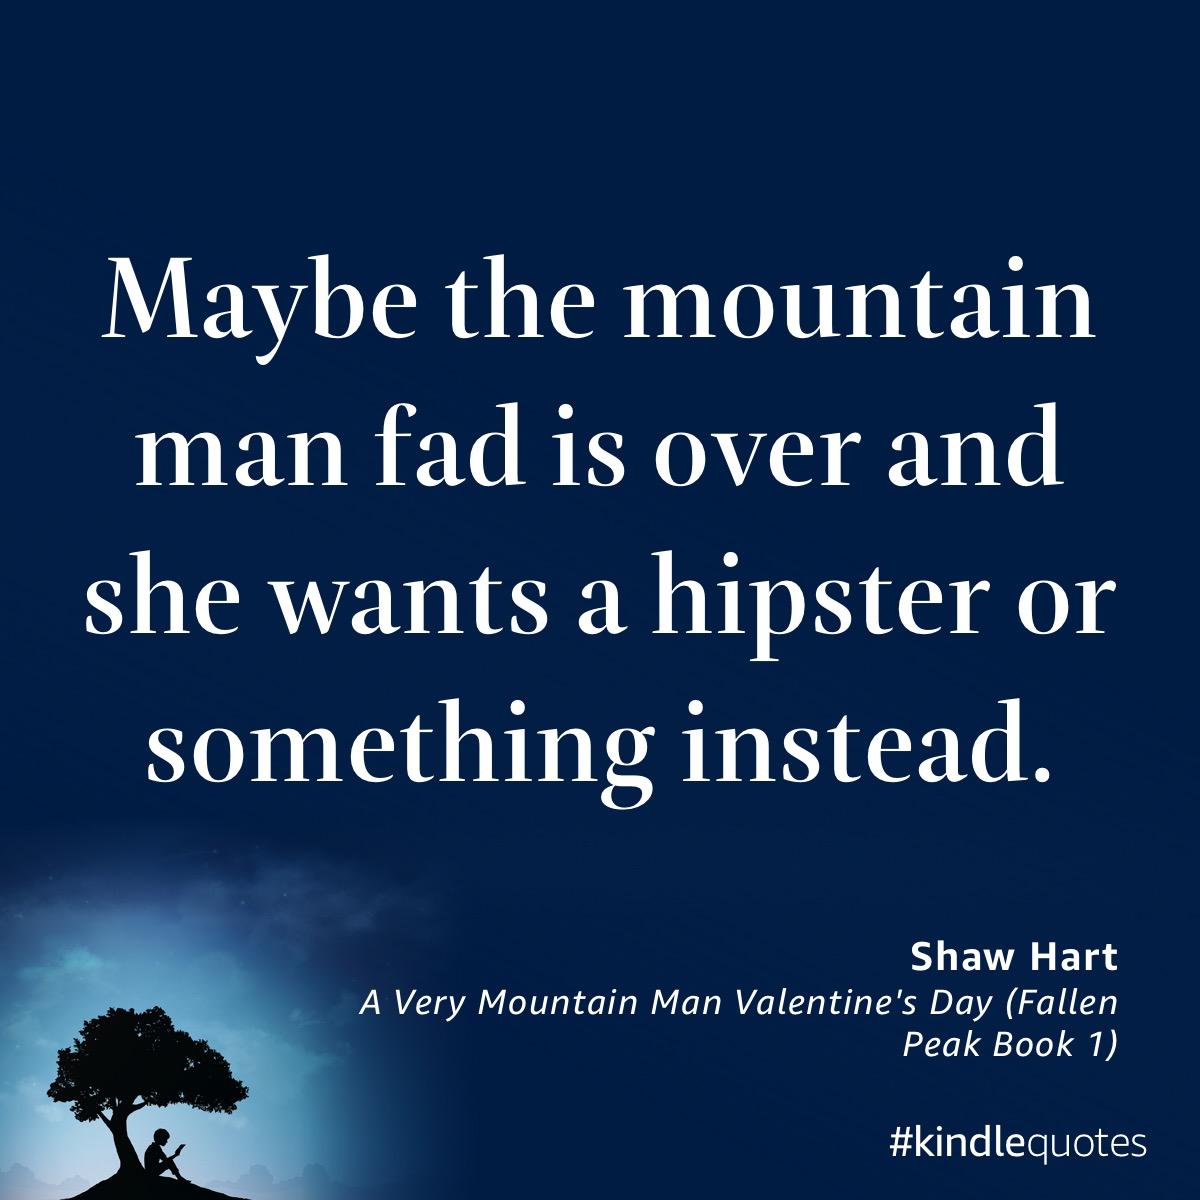 Book quote Shaw Hart